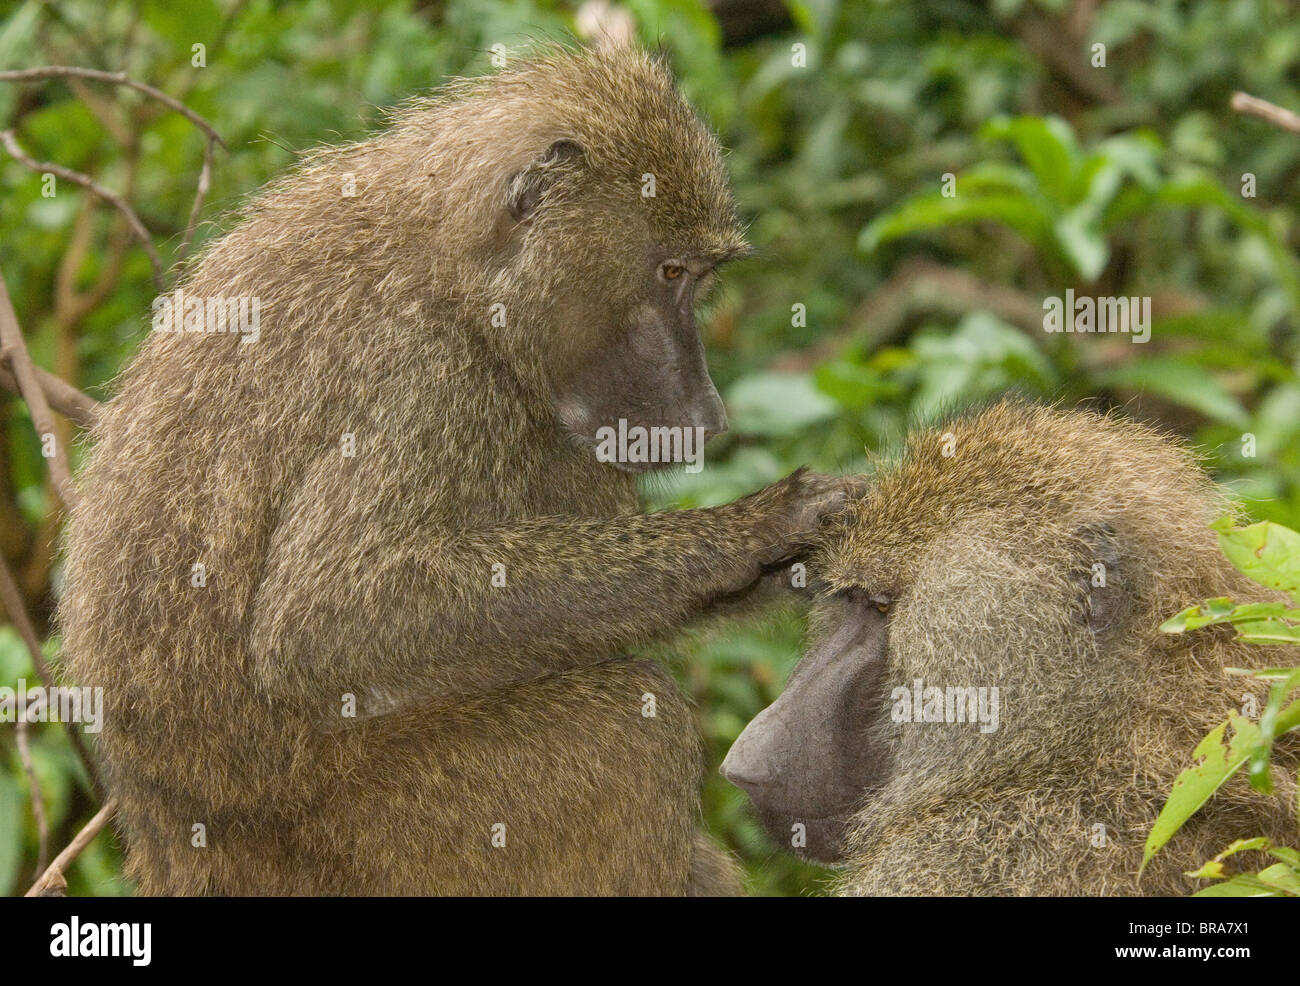 TWO BABOONS GROOMING ONE ANOTHER IN TREE LAKE MANYARA NATIONAL PARK TANZANIA AFRICA - Stock Image